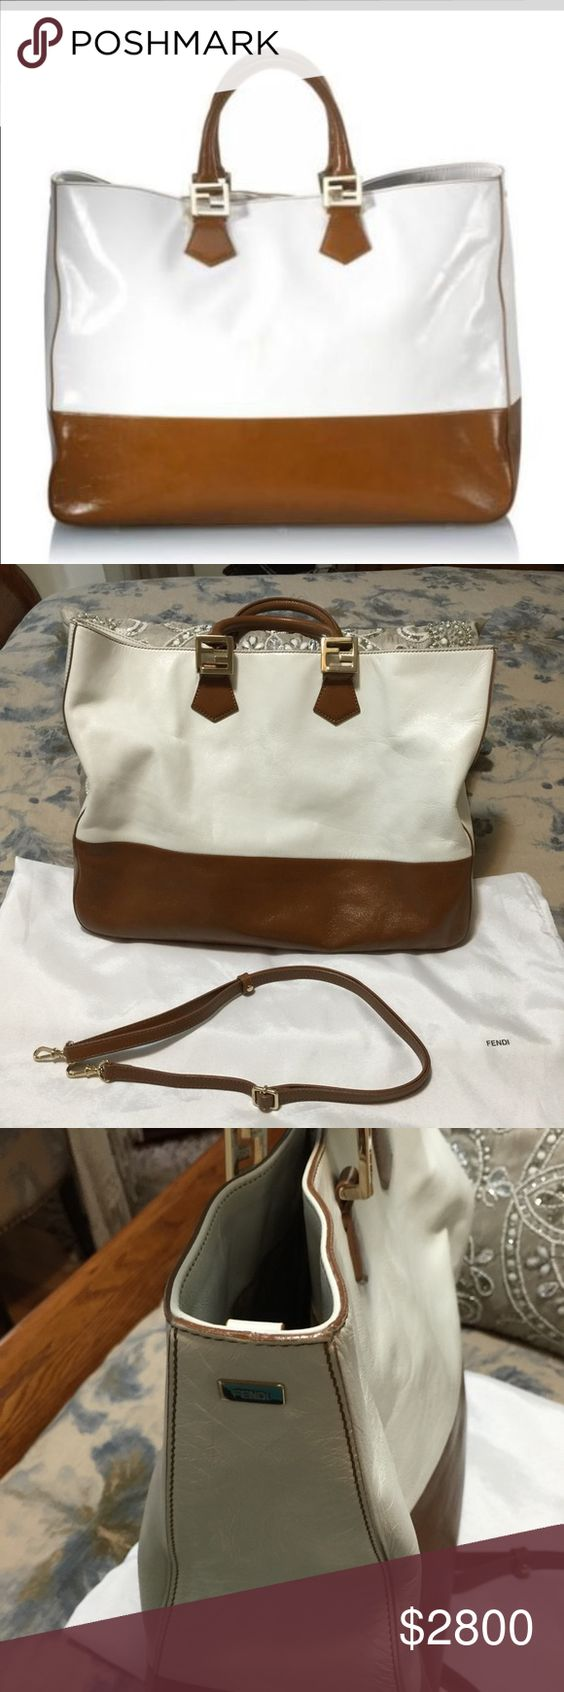 Authentic fendi twin bag just gorgeous This bag is hot hot hot love it. Two toned clean white and Carmel FENDI Bags Shoulder Bags